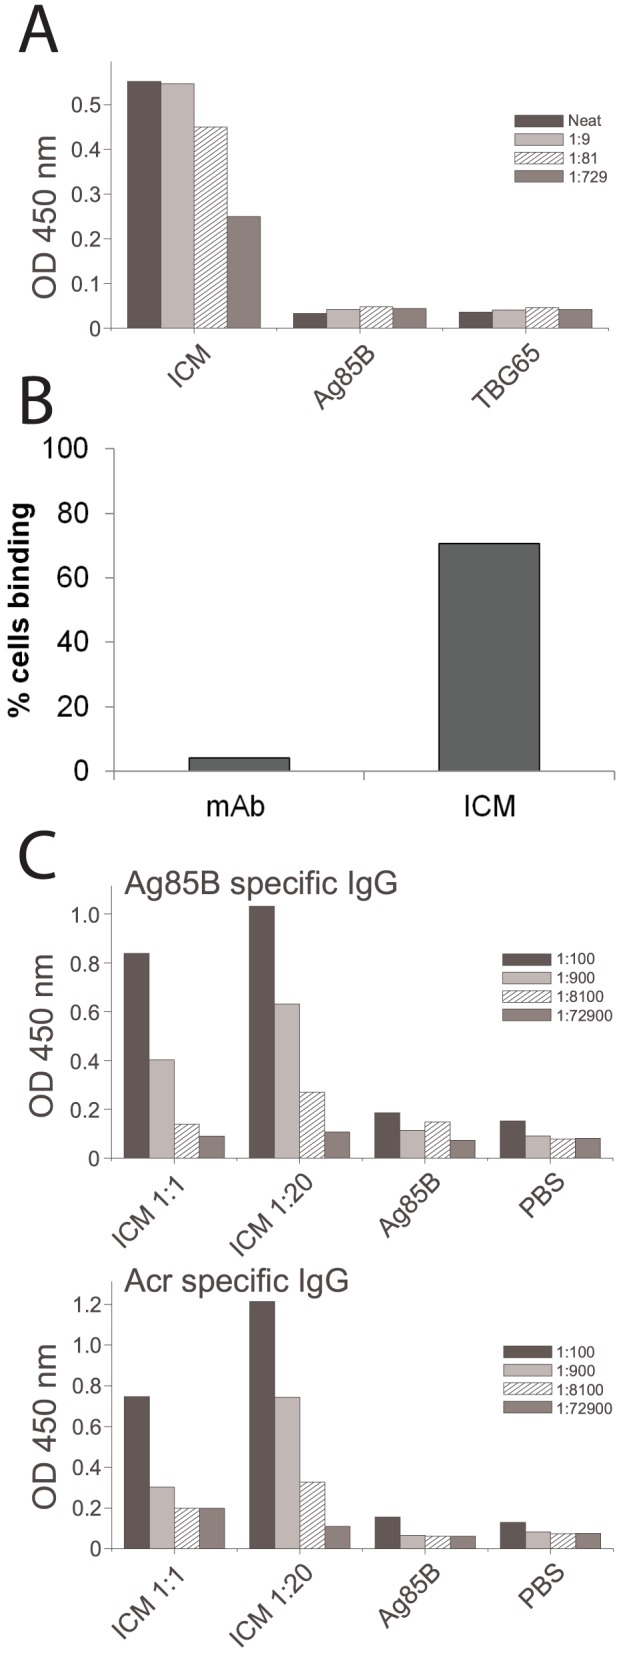 Functional evaluation of ICM in vitro and in vivo. A) Complement C1q binding ELISA; ICM were used at the 1∶20 antibody-antigen ratio and the neat sample contained 5 µg/m total protein (ICM) or the equivalent amount for individual components; each bar represents mean value from triplicate assays and the patterns indicate serial dilutions. B) Analysis of binding of ICM to spleen-derived APCs by flow cytometry; shown are the proportions of cells (out of 10,000 counted) that bound either mAb alone or ICM. C) Serum anti-Ag85B <t>IgG</t> responses from mice immunised with an equimolar (1∶1) or a low (1∶20) antibody-antigen ratio, twice at the base of the tail, at 3-week intervals. Mice were culled 3 weeks after the final immunisation. Shown are the mean values and corresponding serial dilutions from a pilot experiment (n = 3 mice).